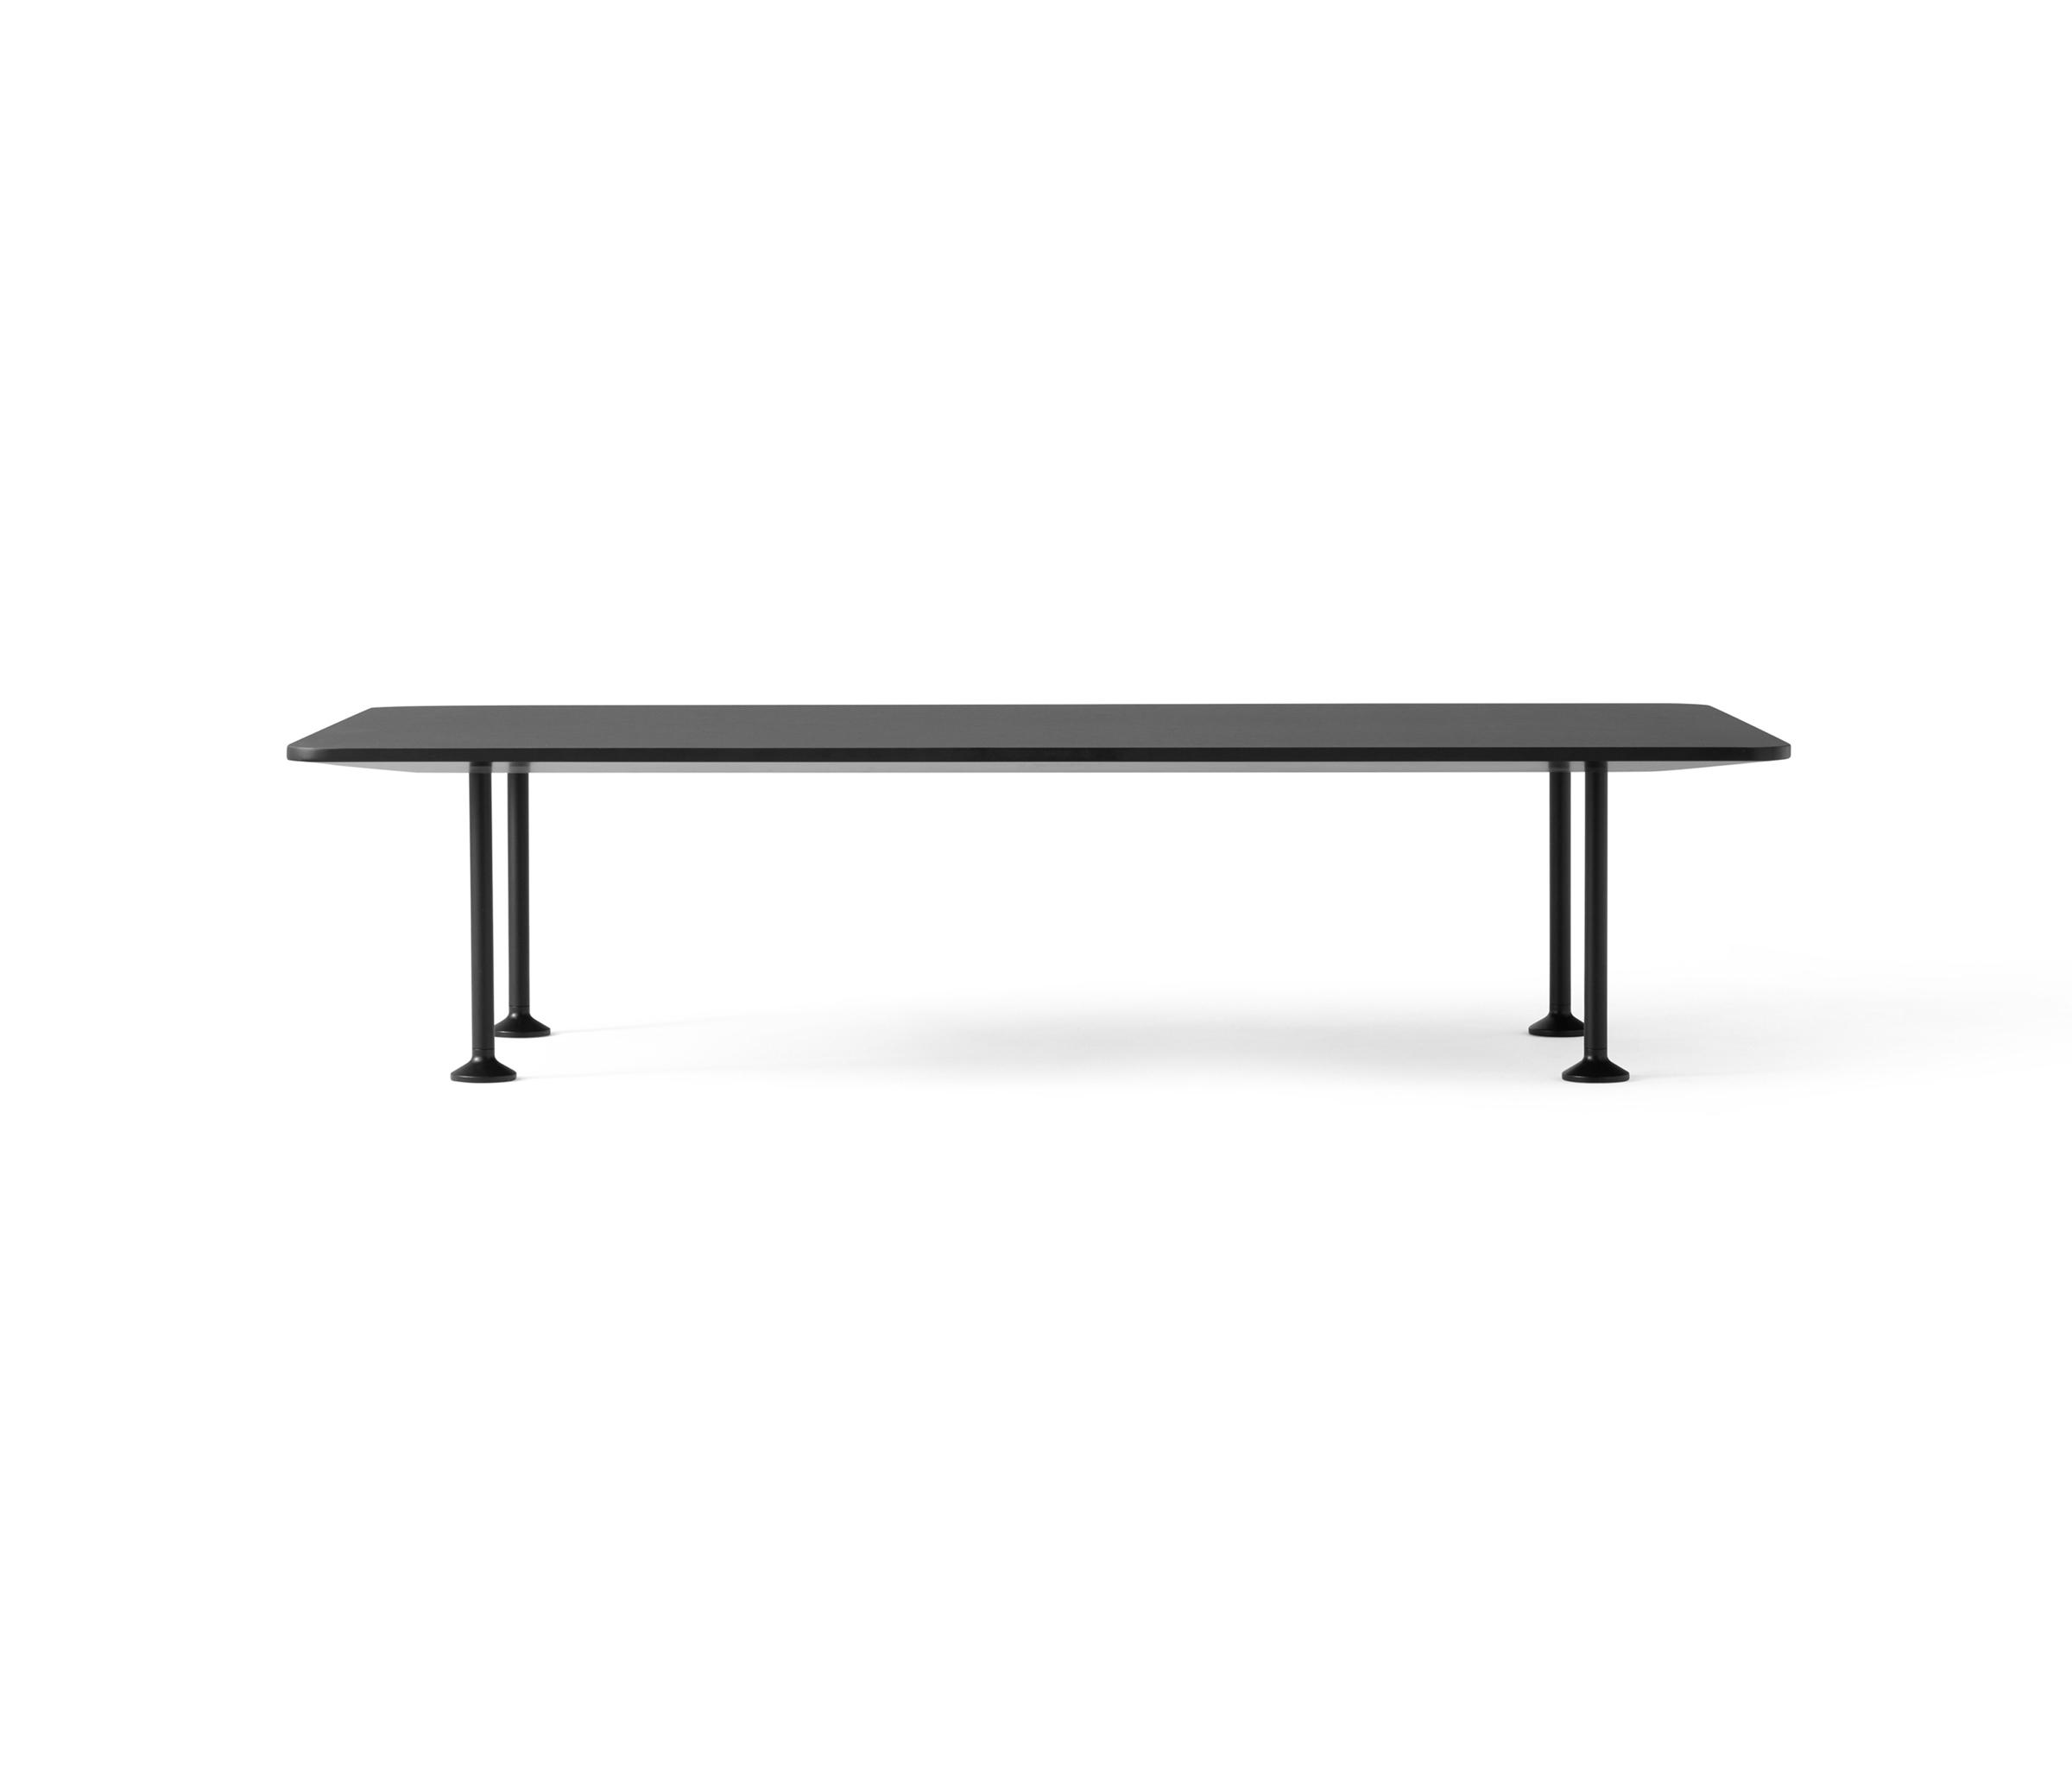 Godot coffee table rectangular charcoal lounge tables from godot coffee table rectangular charcoal by menu lounge tables geotapseo Choice Image